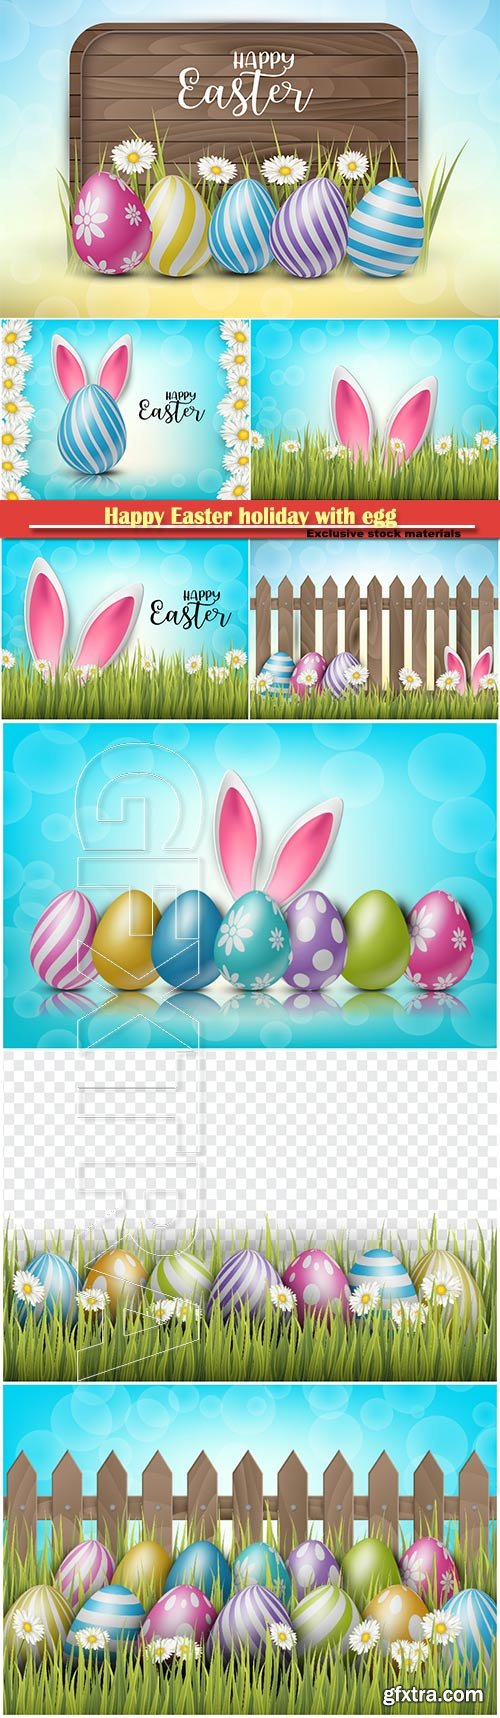 Happy Easter holiday with egg and spring flower vector illustration # 8